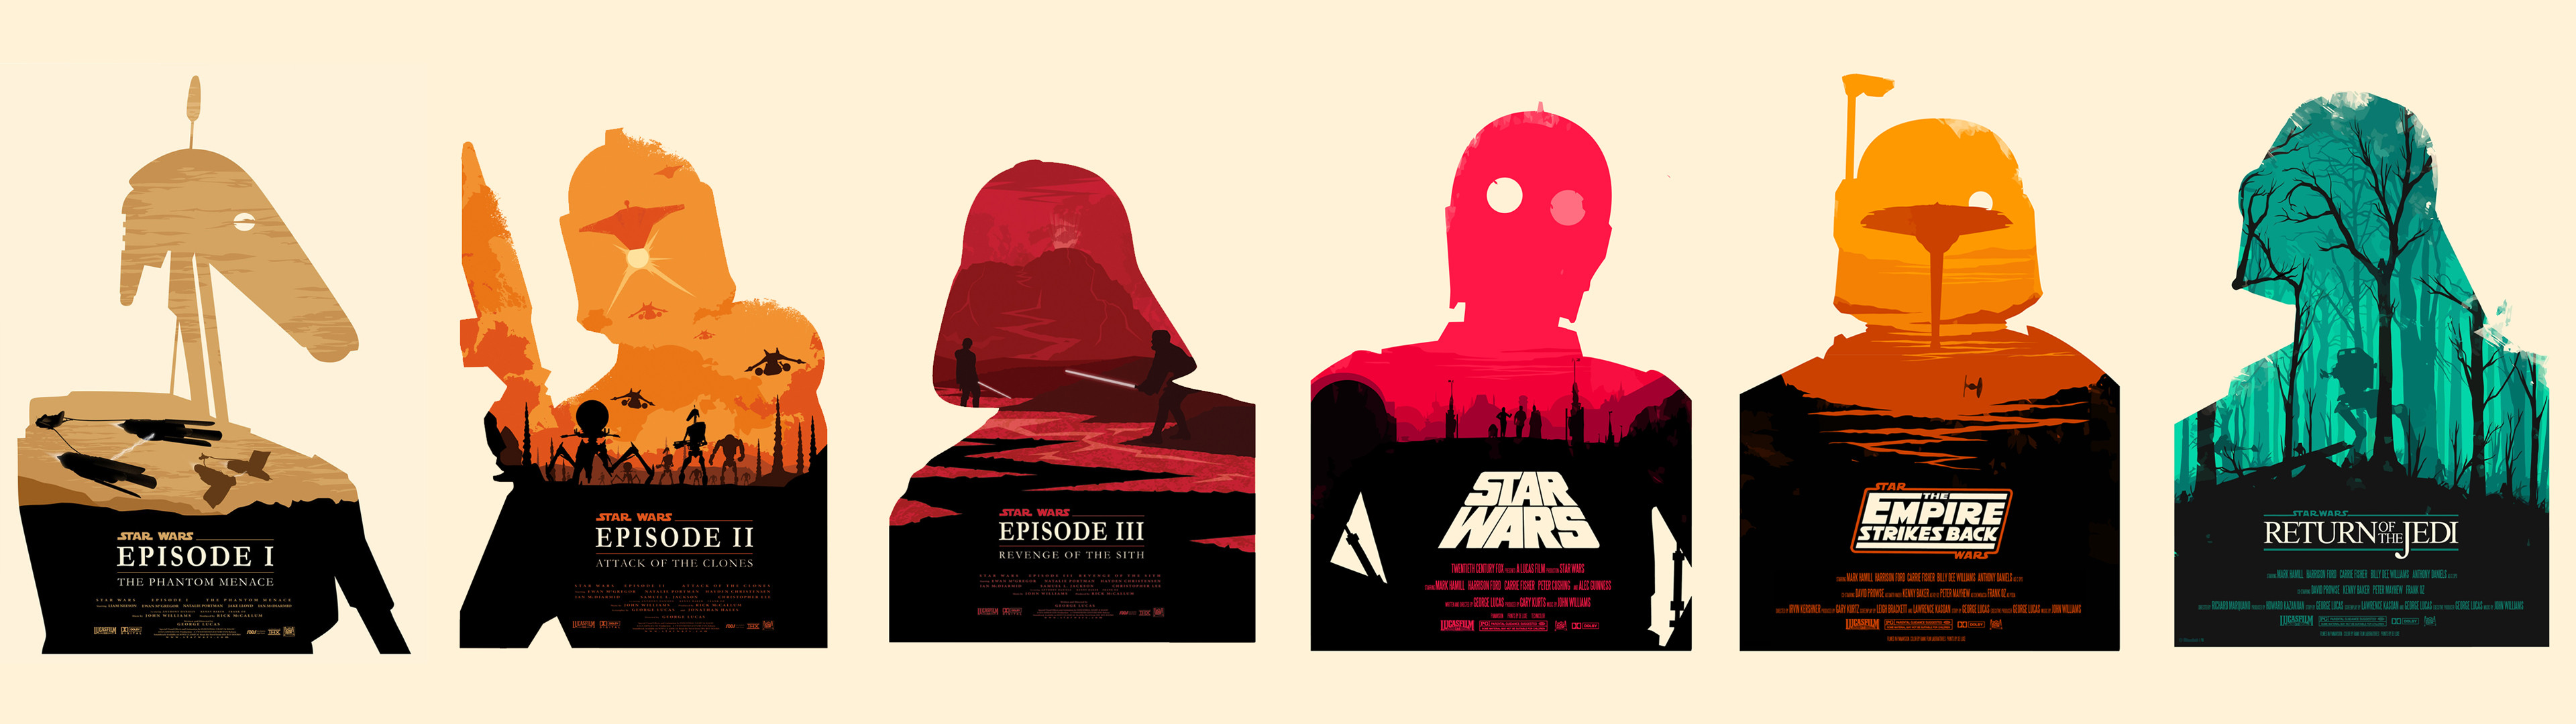 Dual-monitor-Star-Wars-posters-3840×1080-by-Douglas-